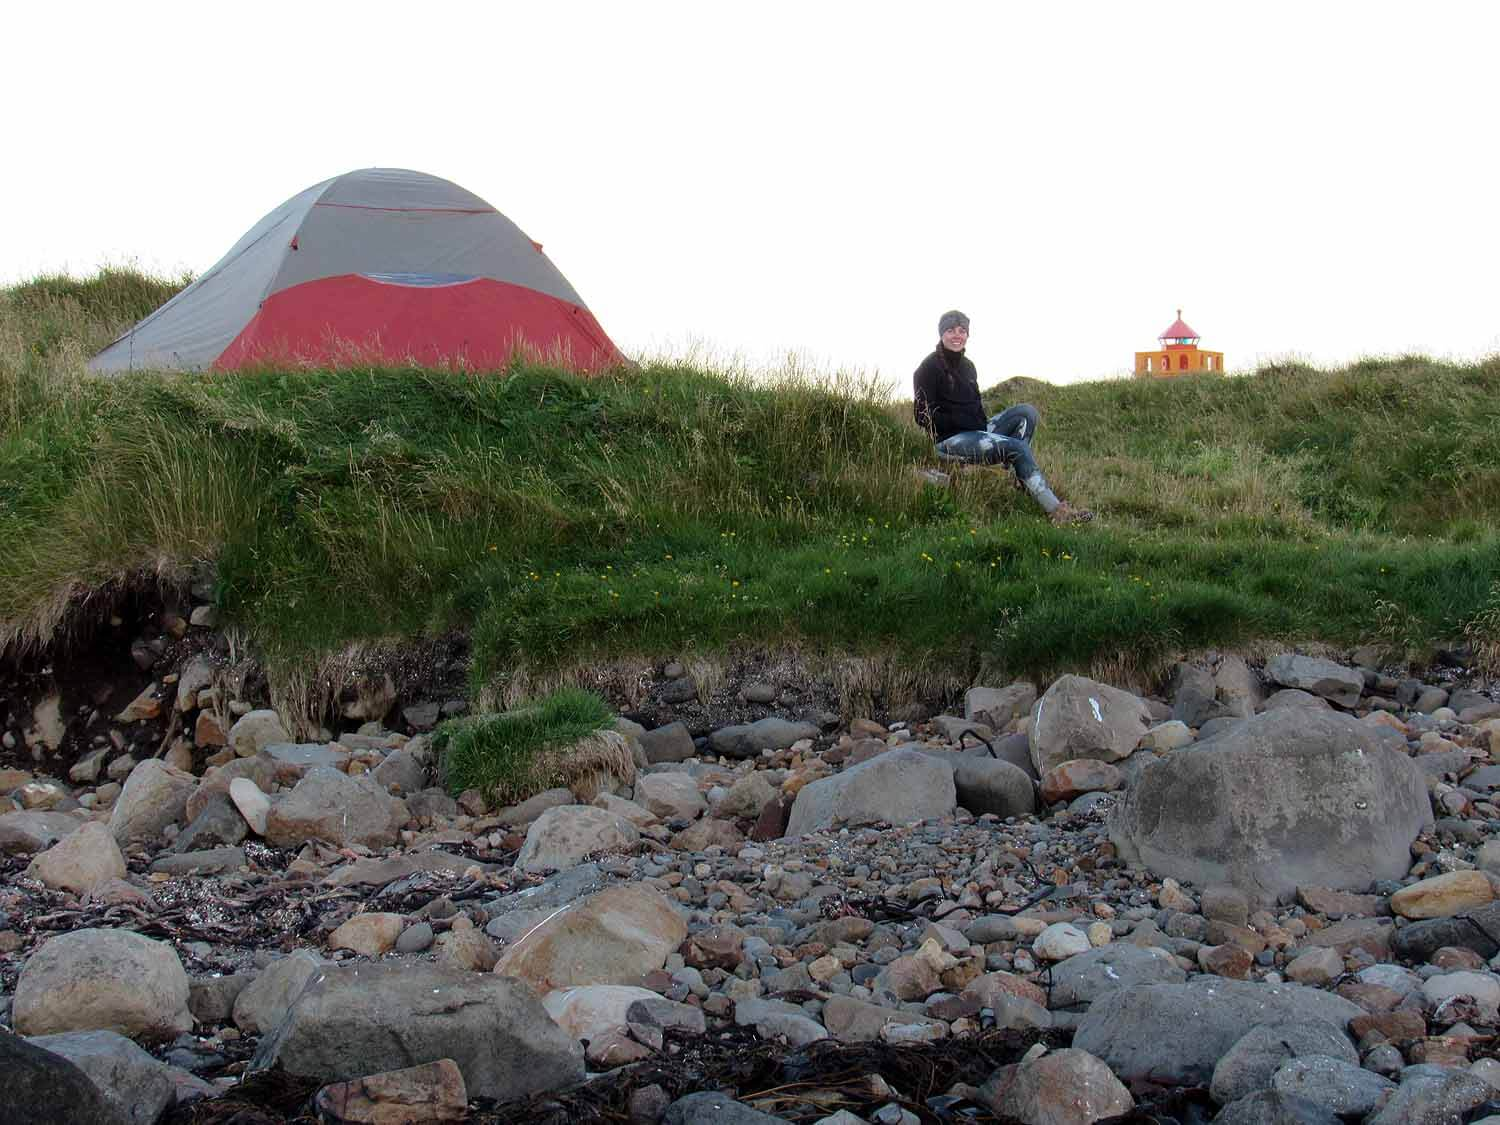 iceland-east-eastfjords-camping-tent-fishing-village-lighthouse.JPG